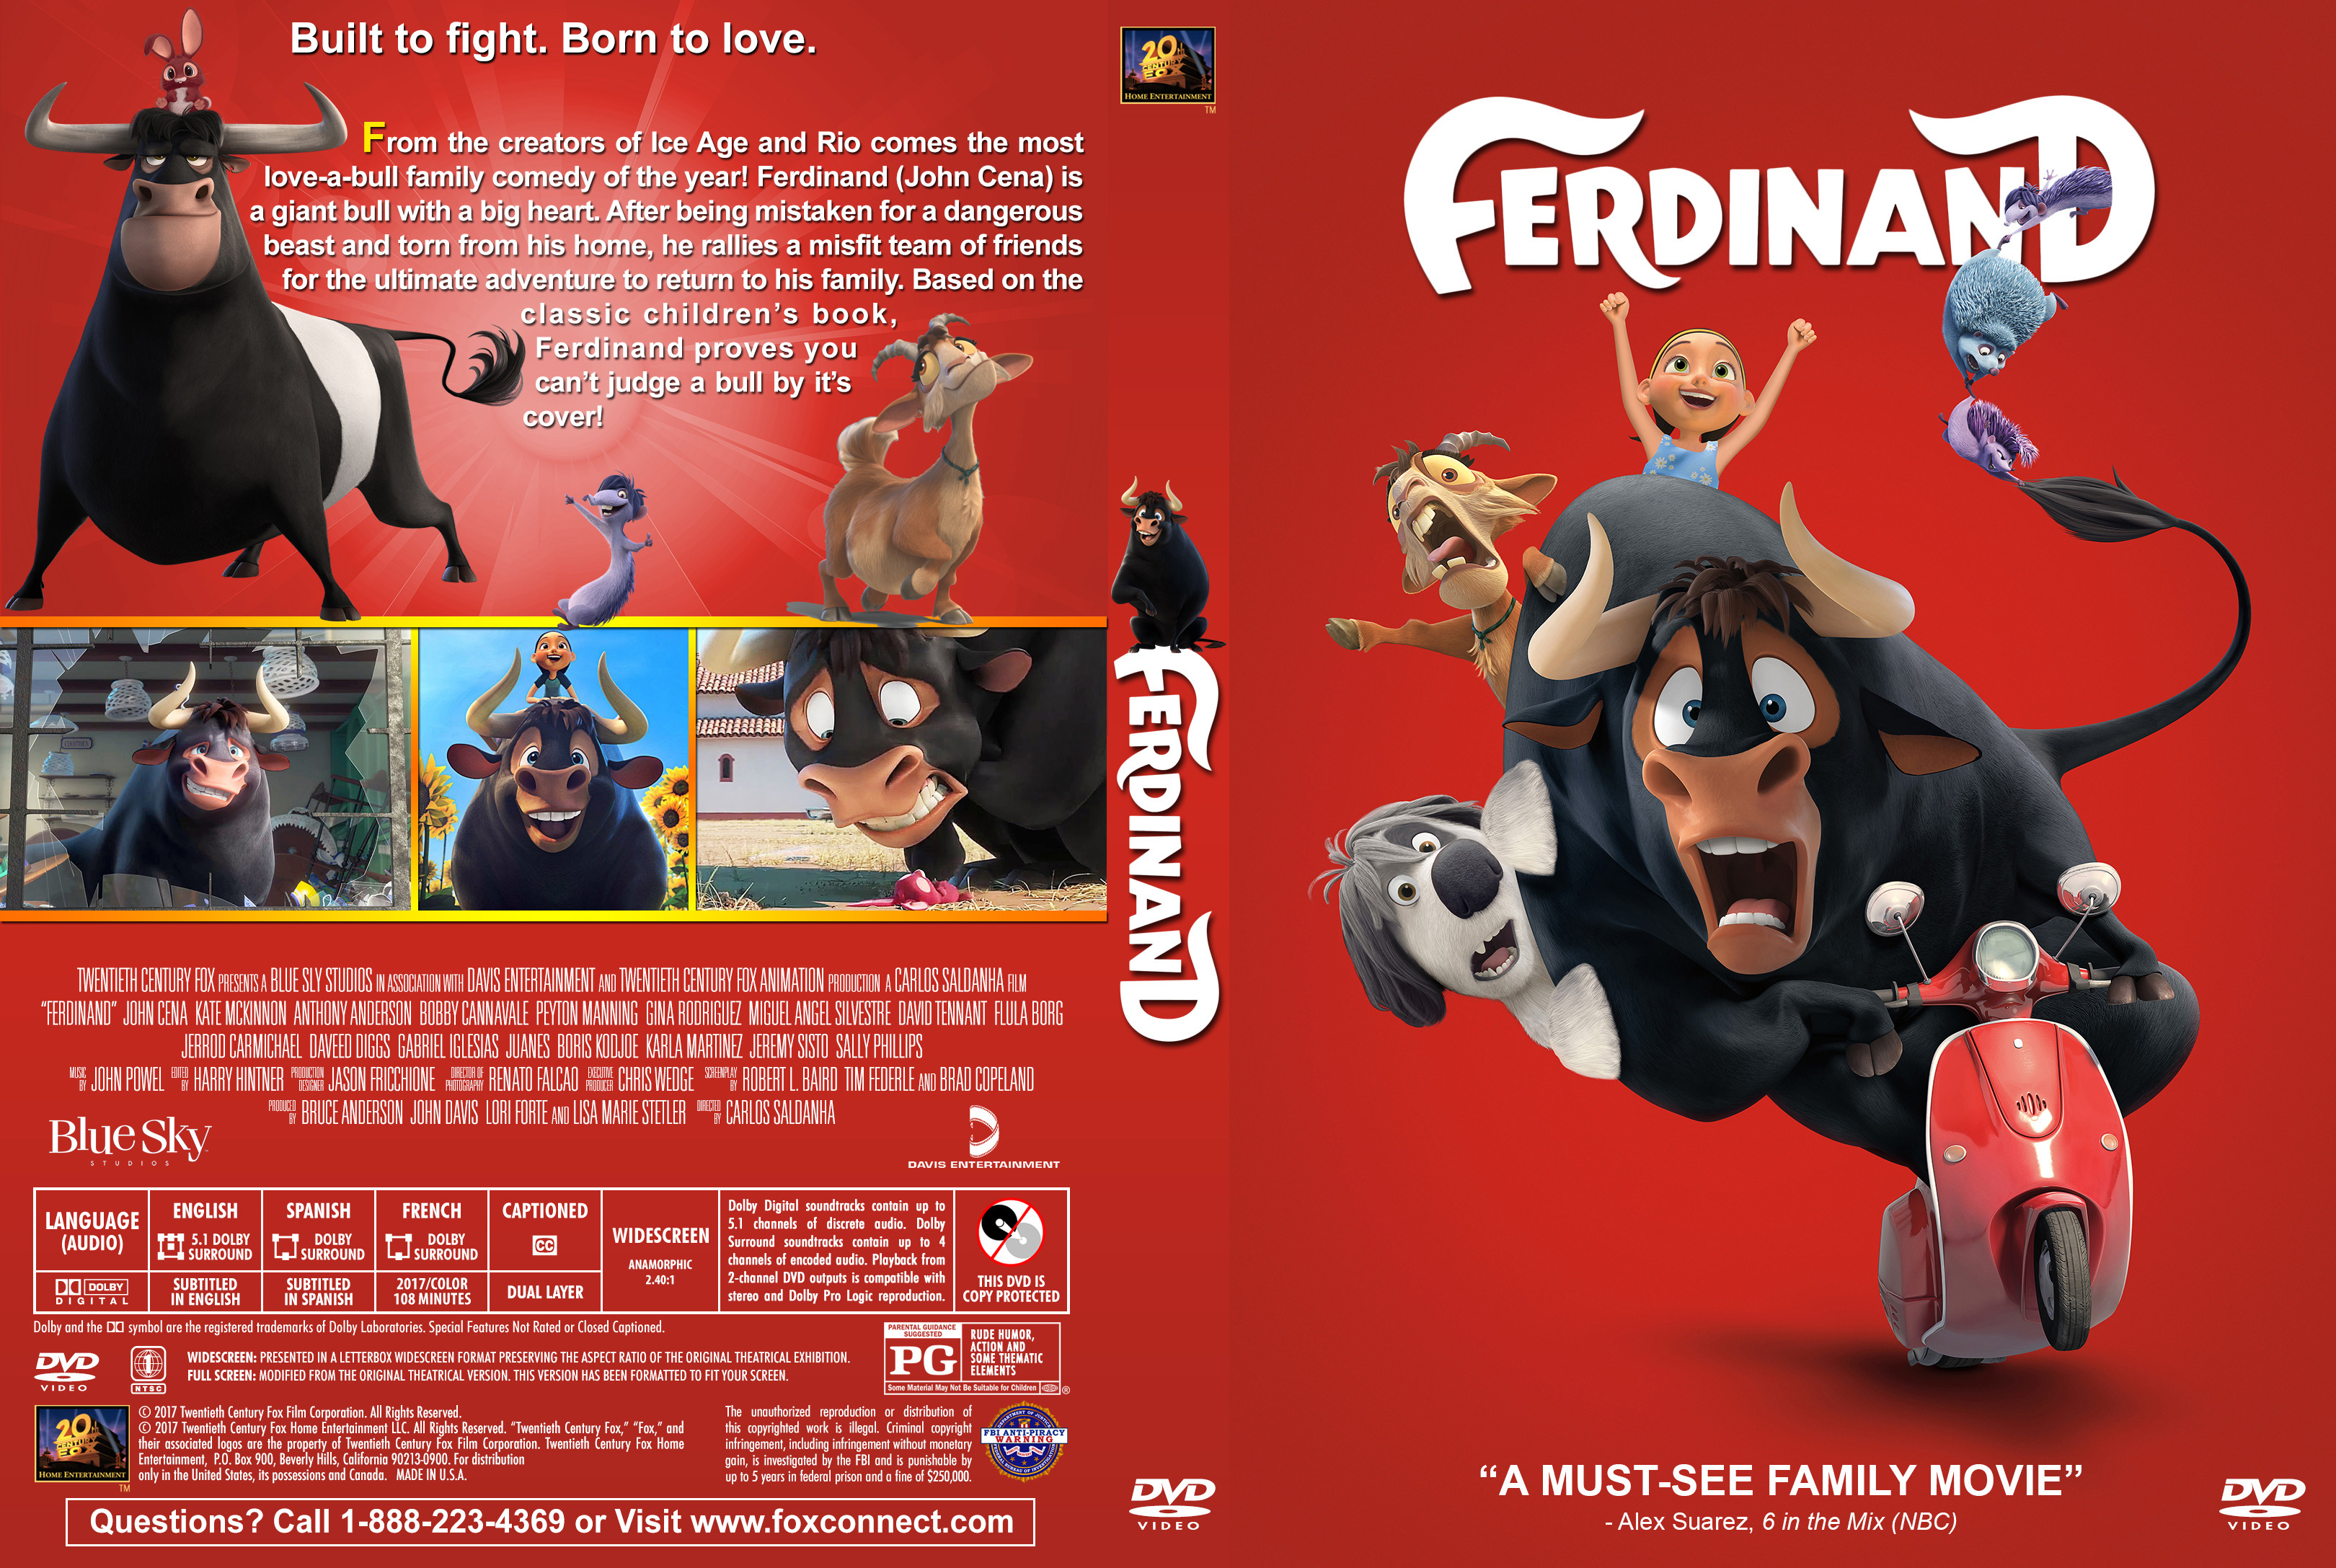 Ferdinand 2017 Front Dvd Covers Cover Century Over 500 000 Album Art Covers For Free